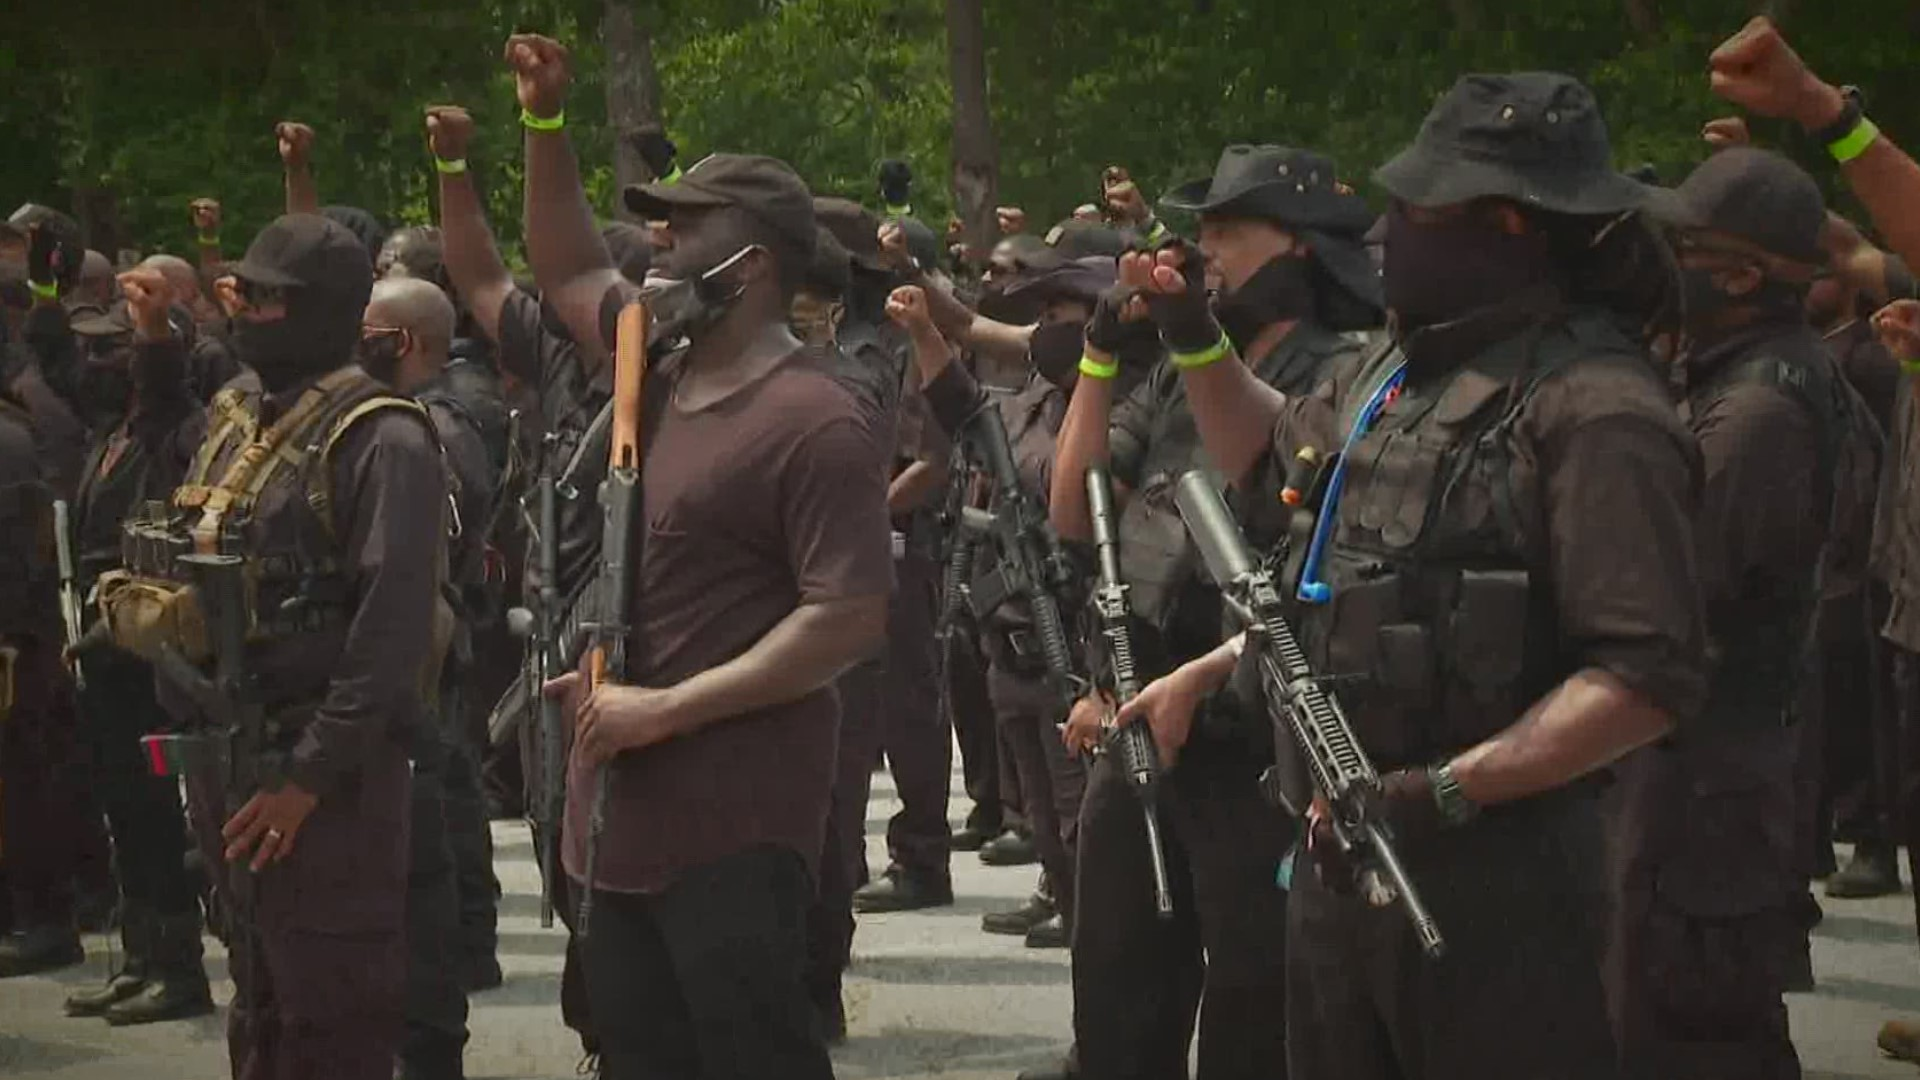 Predominantly Black armed protesters march through Confederate memorial park in Georgia